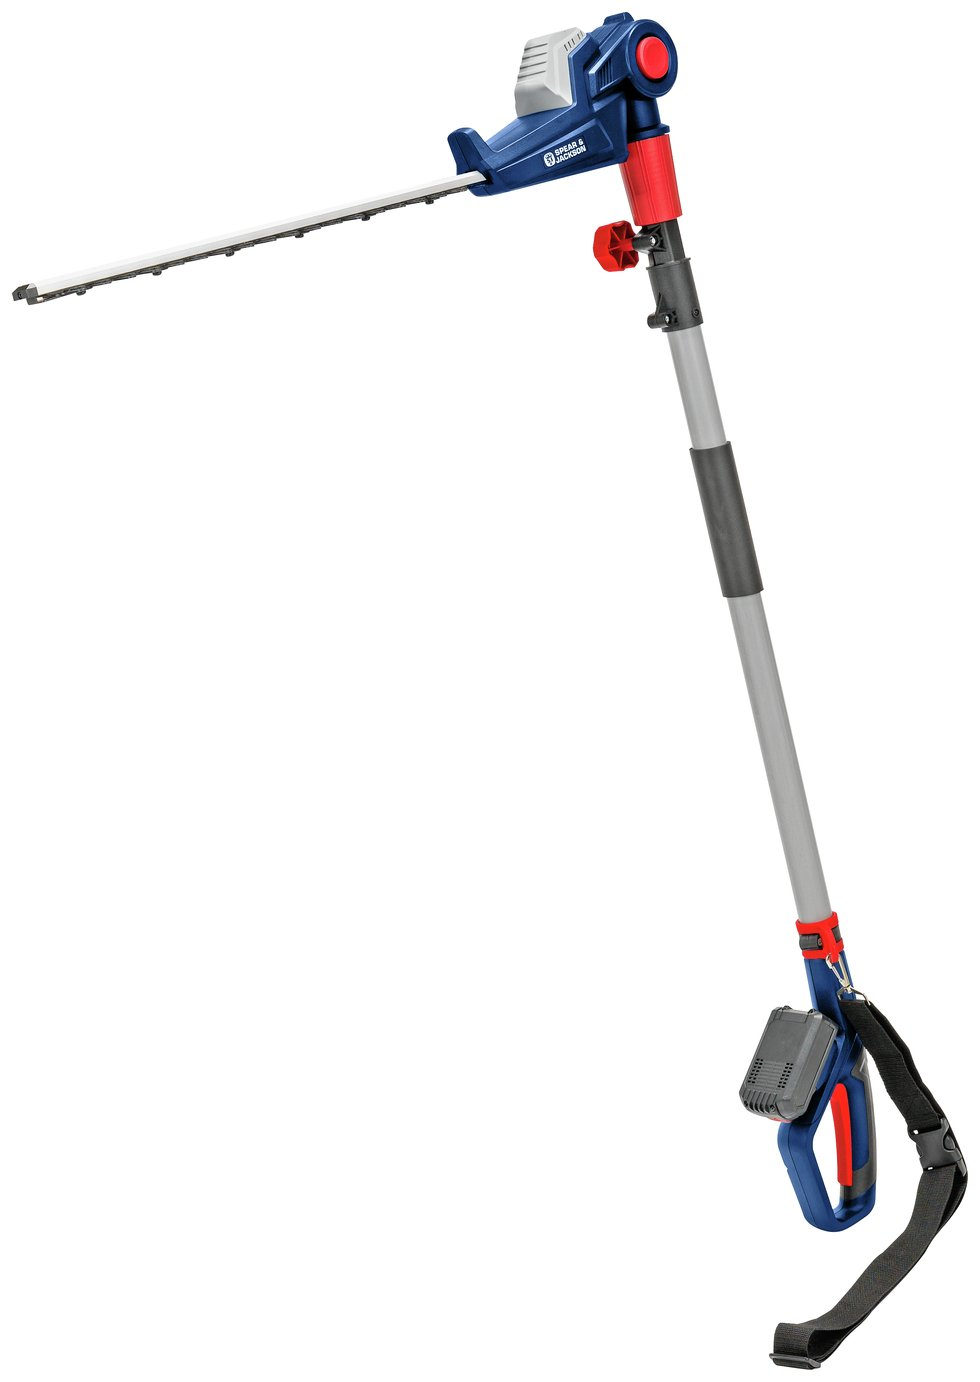 Spear & Jackson S18EHP Cordless Pole Hedge Trimmer - 18V